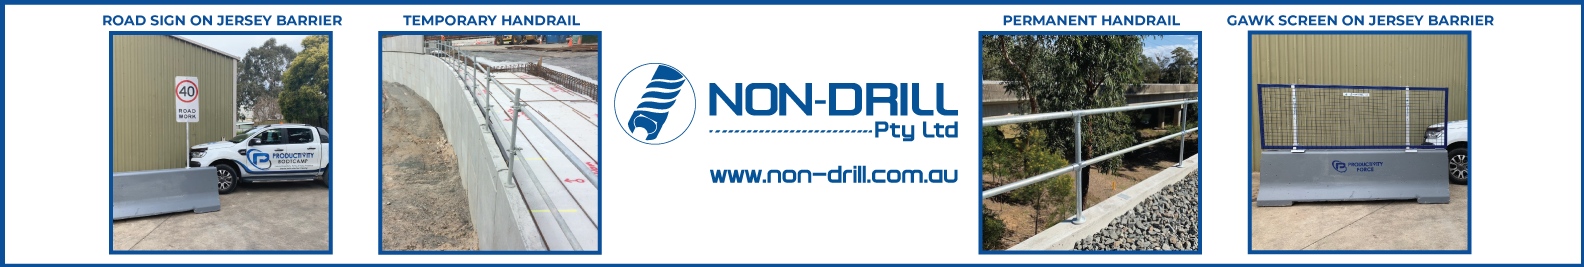 INTRODUCING NON-DRILL